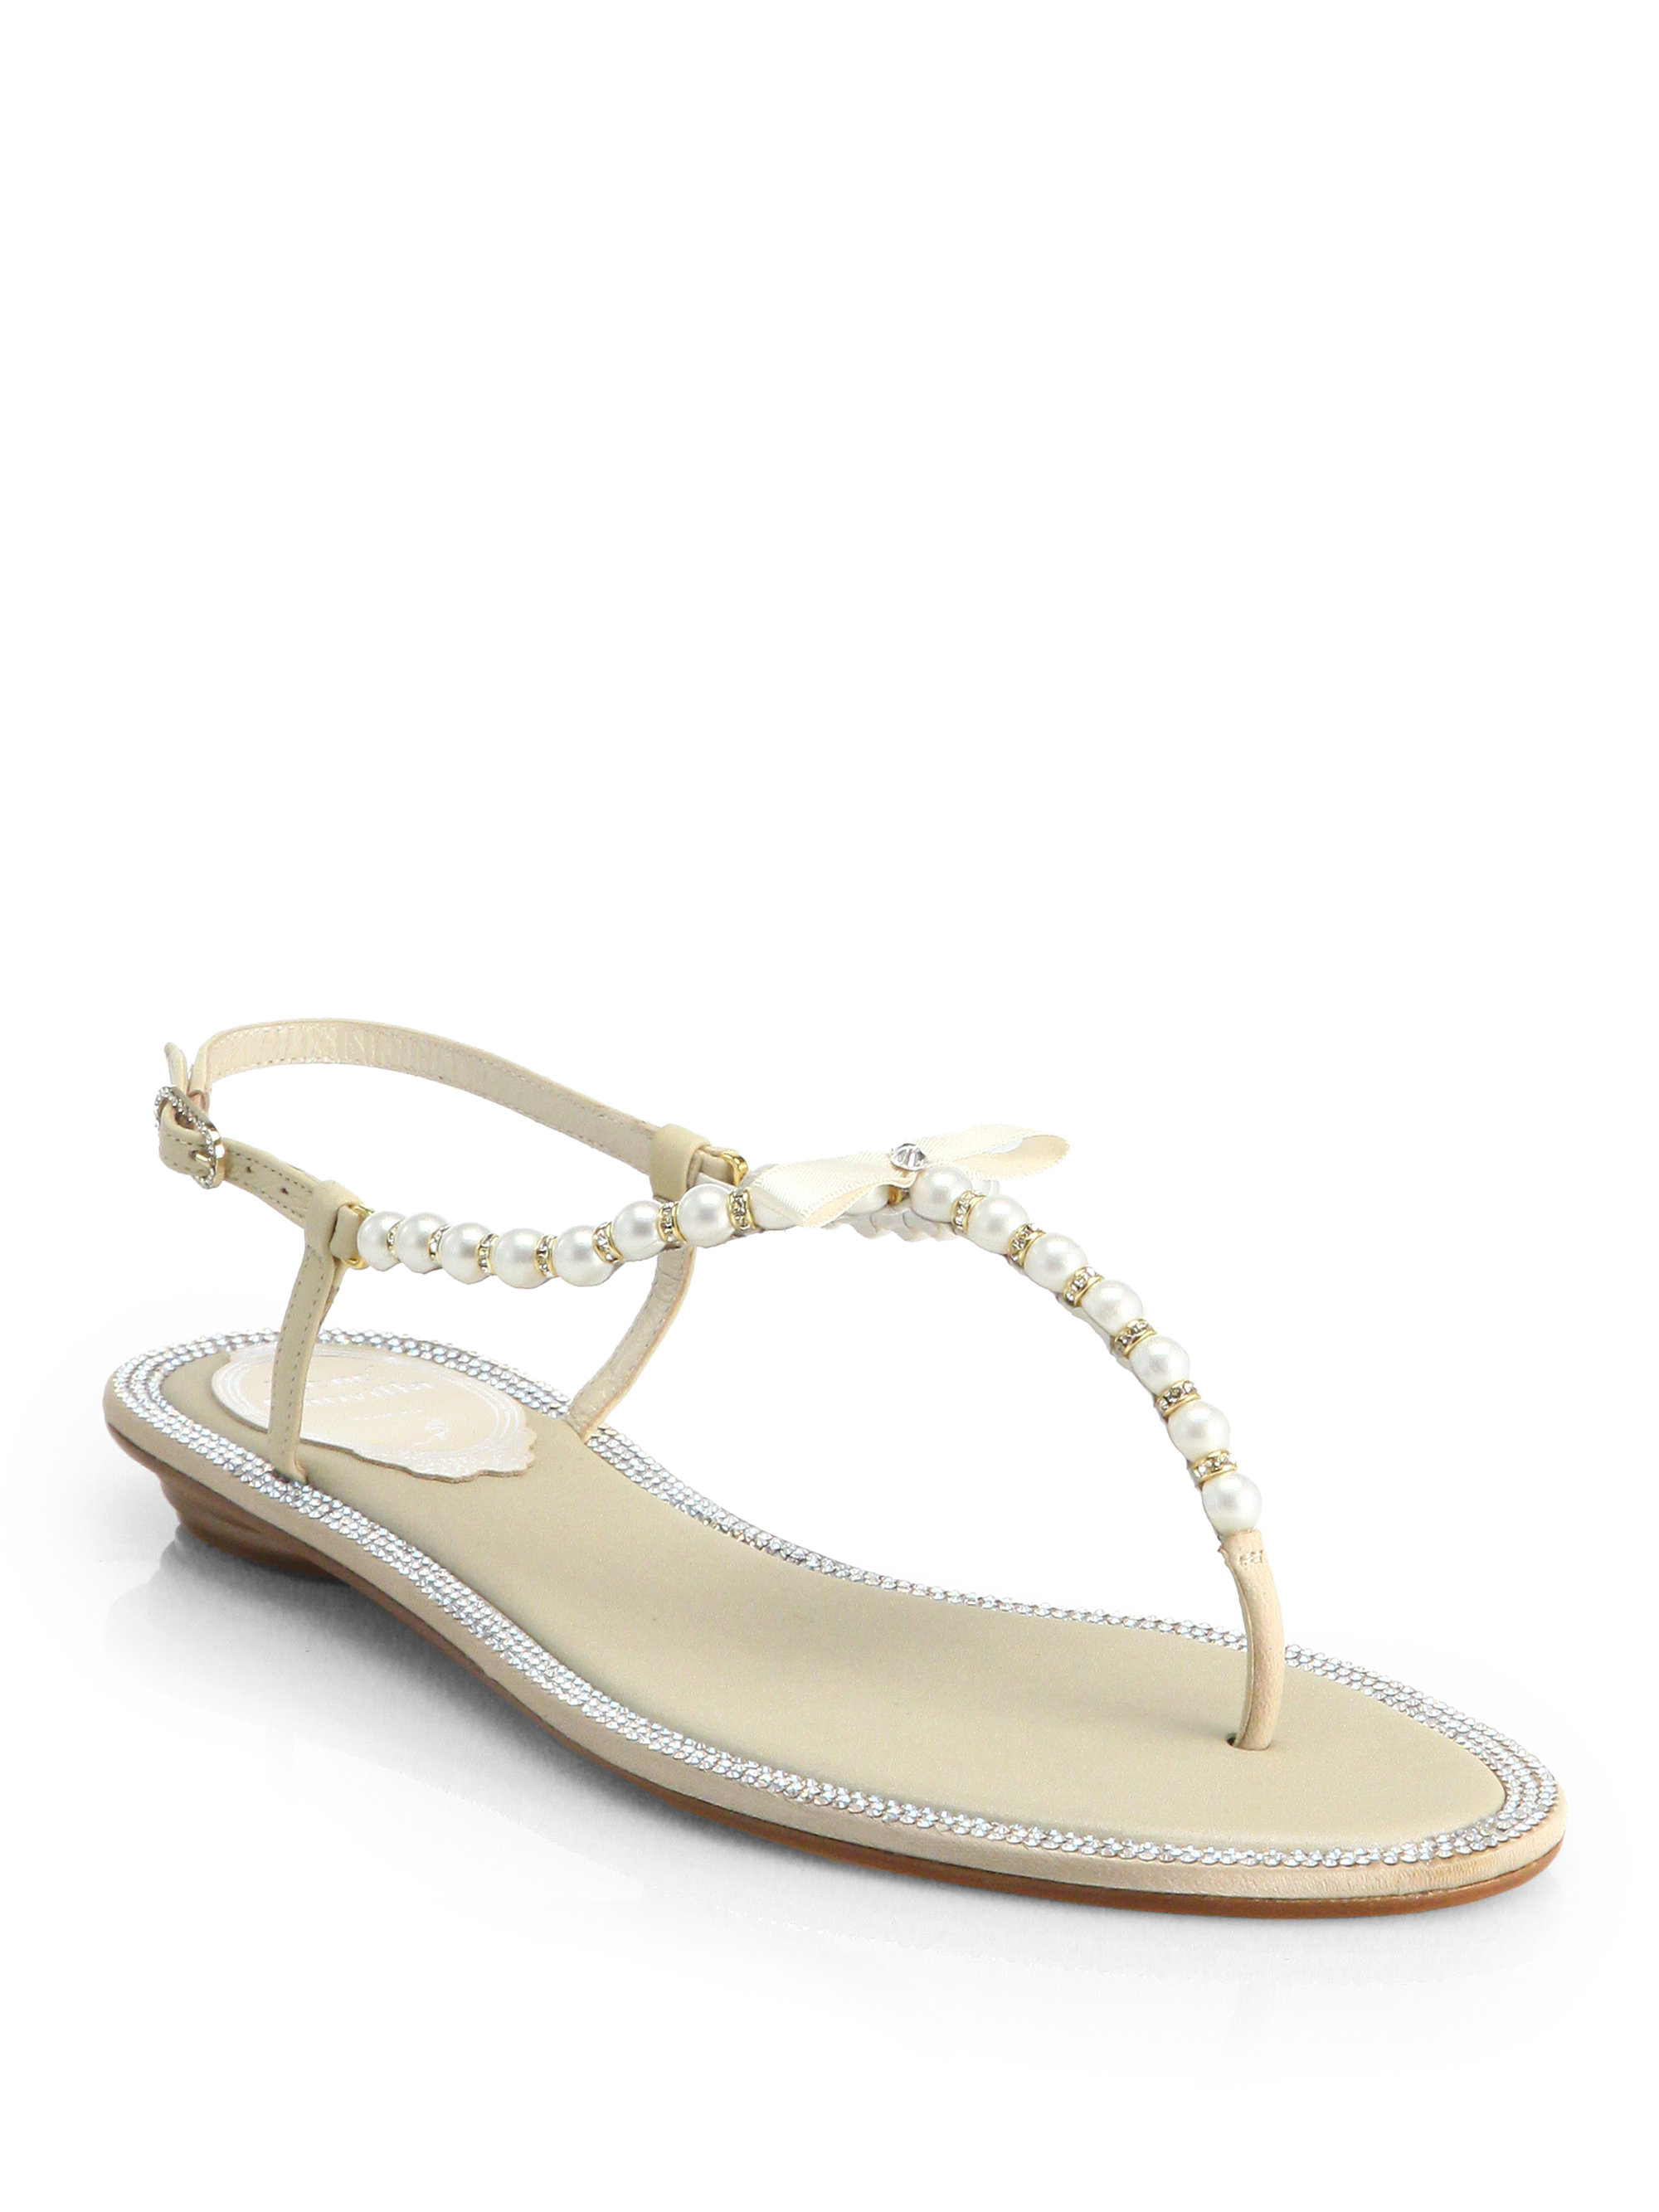 Lyst - Rene Caovilla Crystal   Faux Pearl Leather Sandals in Natural